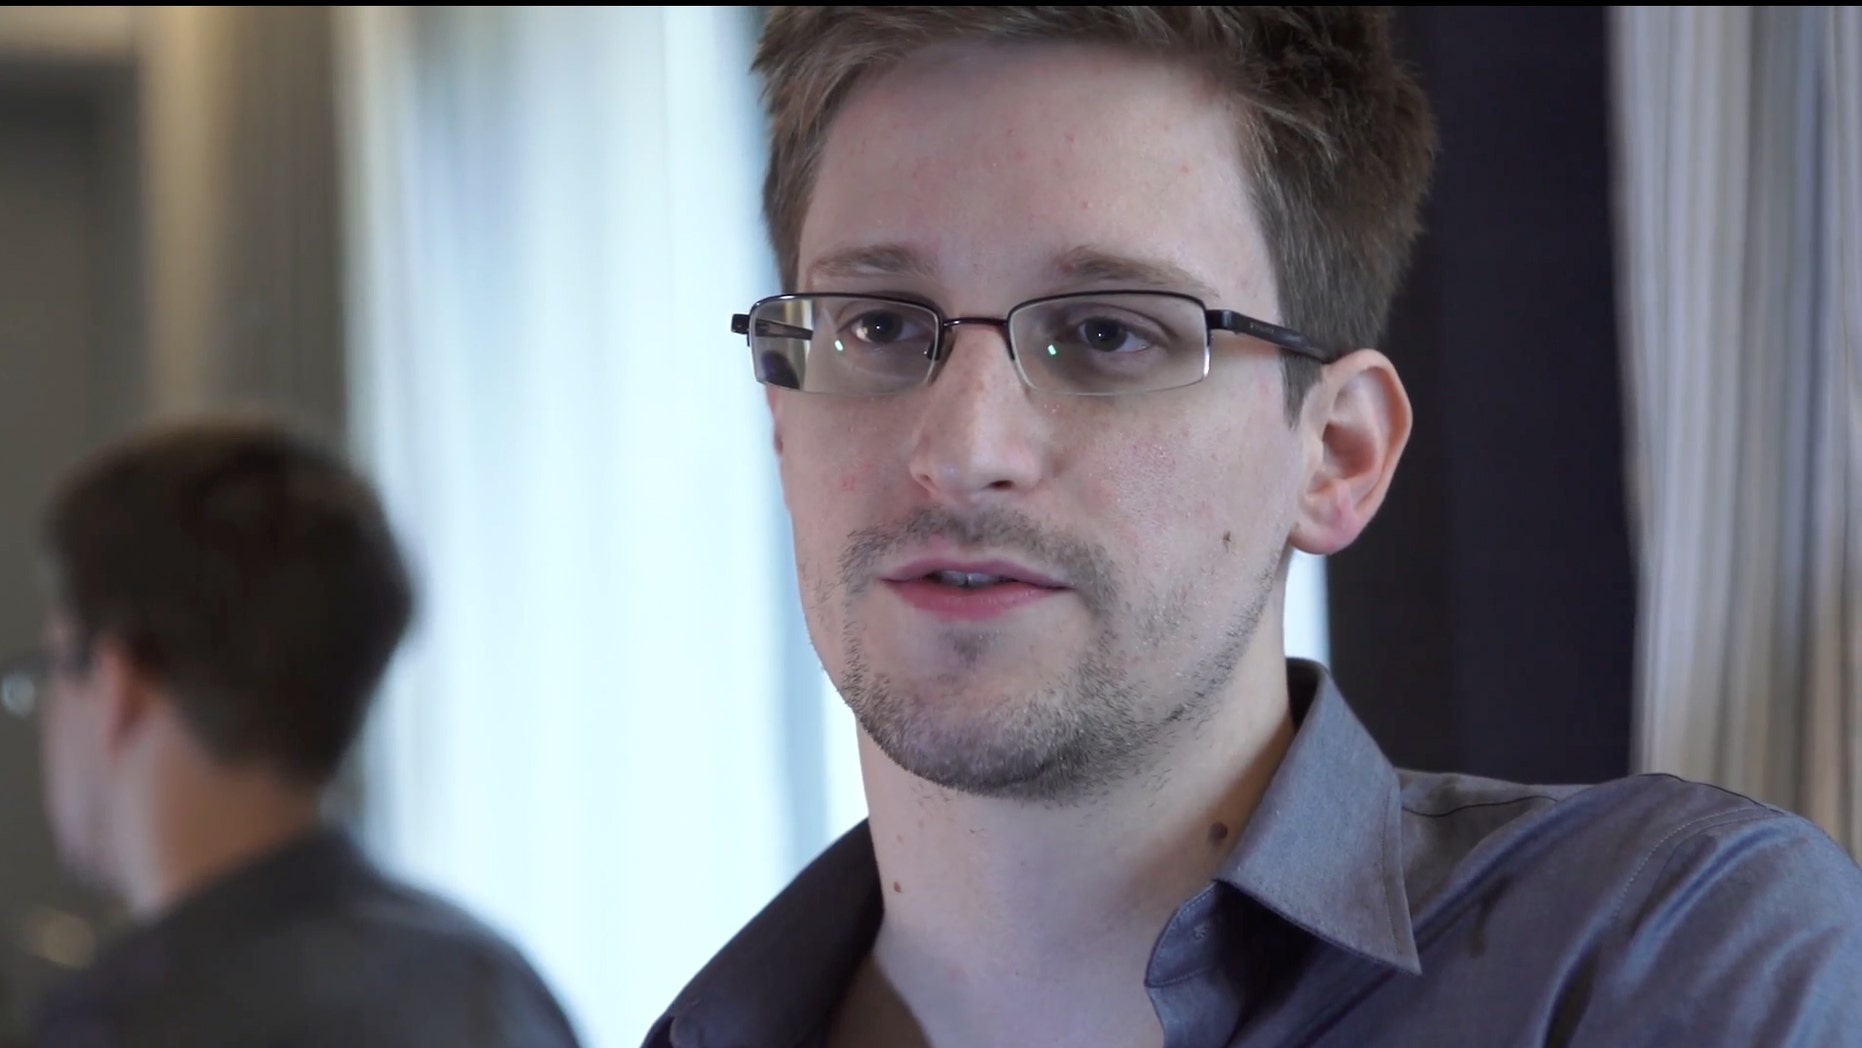 FILE - This Sunday, June 9, 2013 file photo provided by The Guardian Newspaper in London shows Edward Snowden, in Hong Kong. Snowden has left Moscow's Sheremetyevo airport and entered Russia his lawyer said on Thursday Aug. 1, 2013. (AP Photo/The Guardian, Glenn Greenwald and Laura Poitras, File)